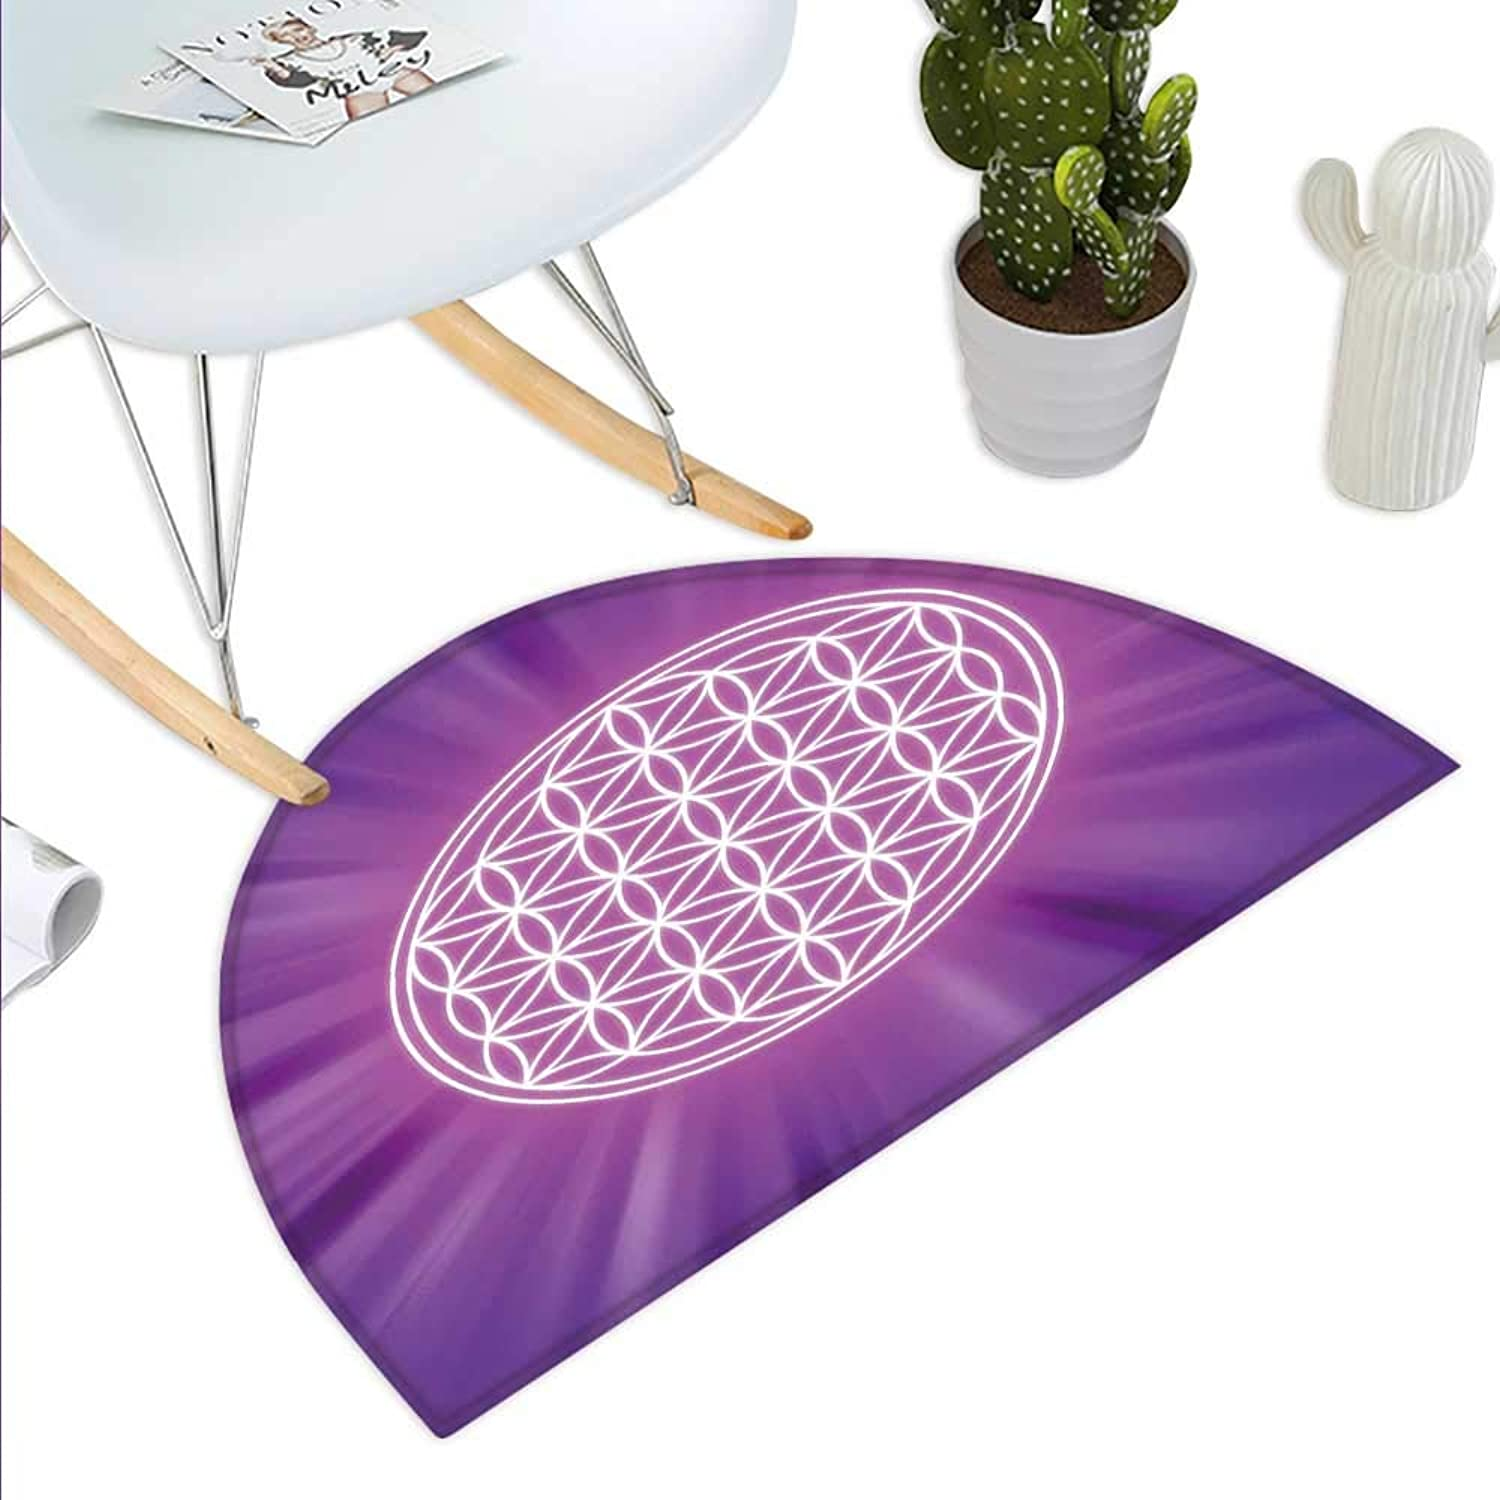 Sacred Geometry Semicircle Doormat Abstract Overlapping Circles on Spiritual Vibrant Background Print Halfmoon doormats H 39.3  xD 59  Fuchsia Purple